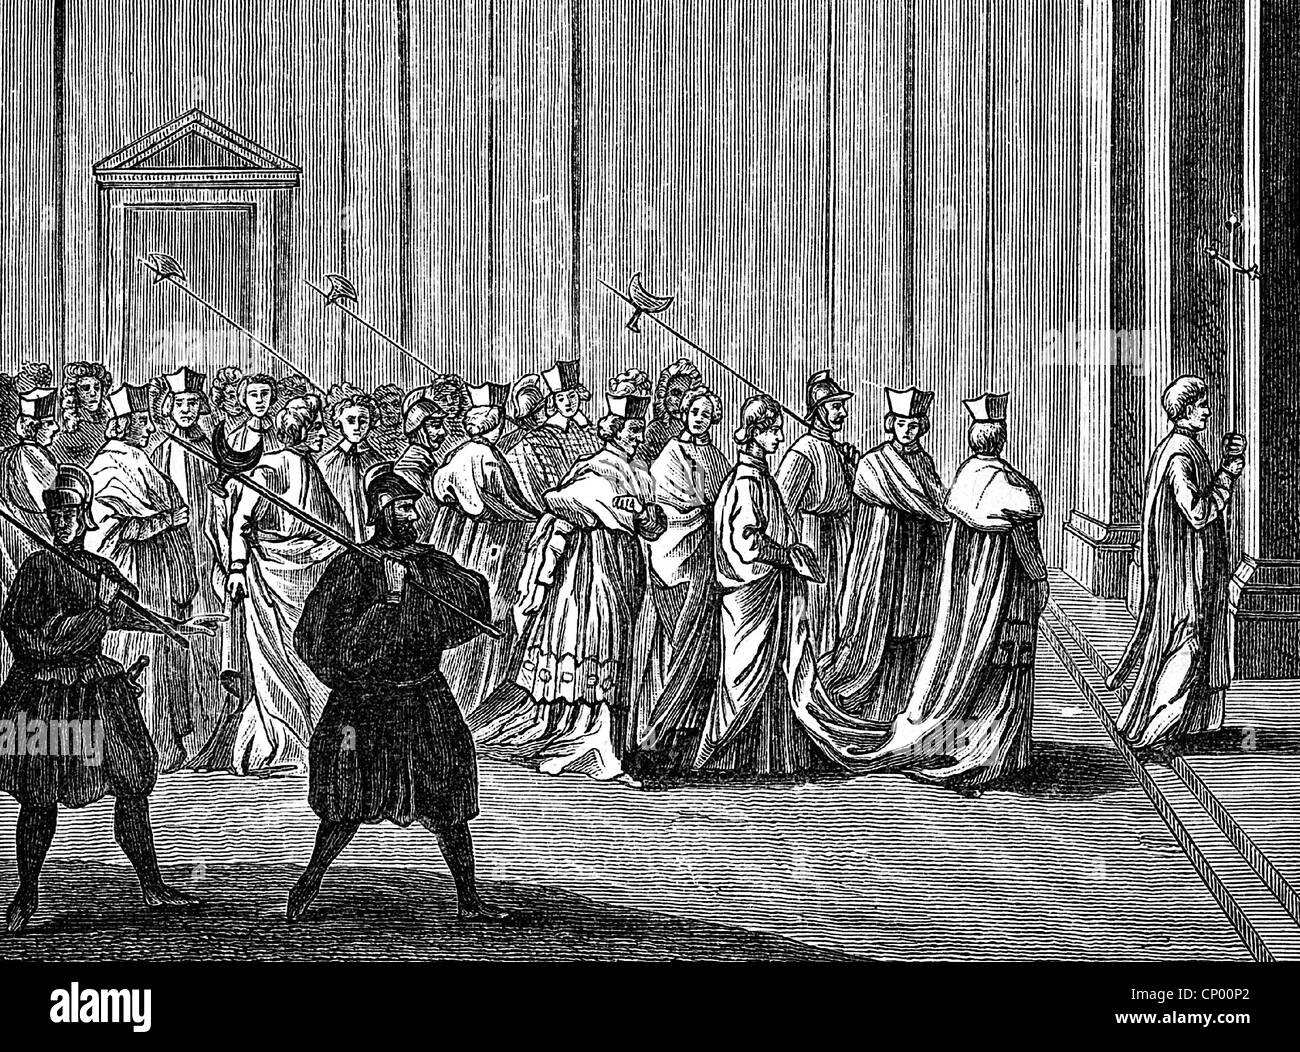 religion, Christianity, dignitary, papal election, conclave, wood engraving to 'Ceremonies religieuses' - Stock Image